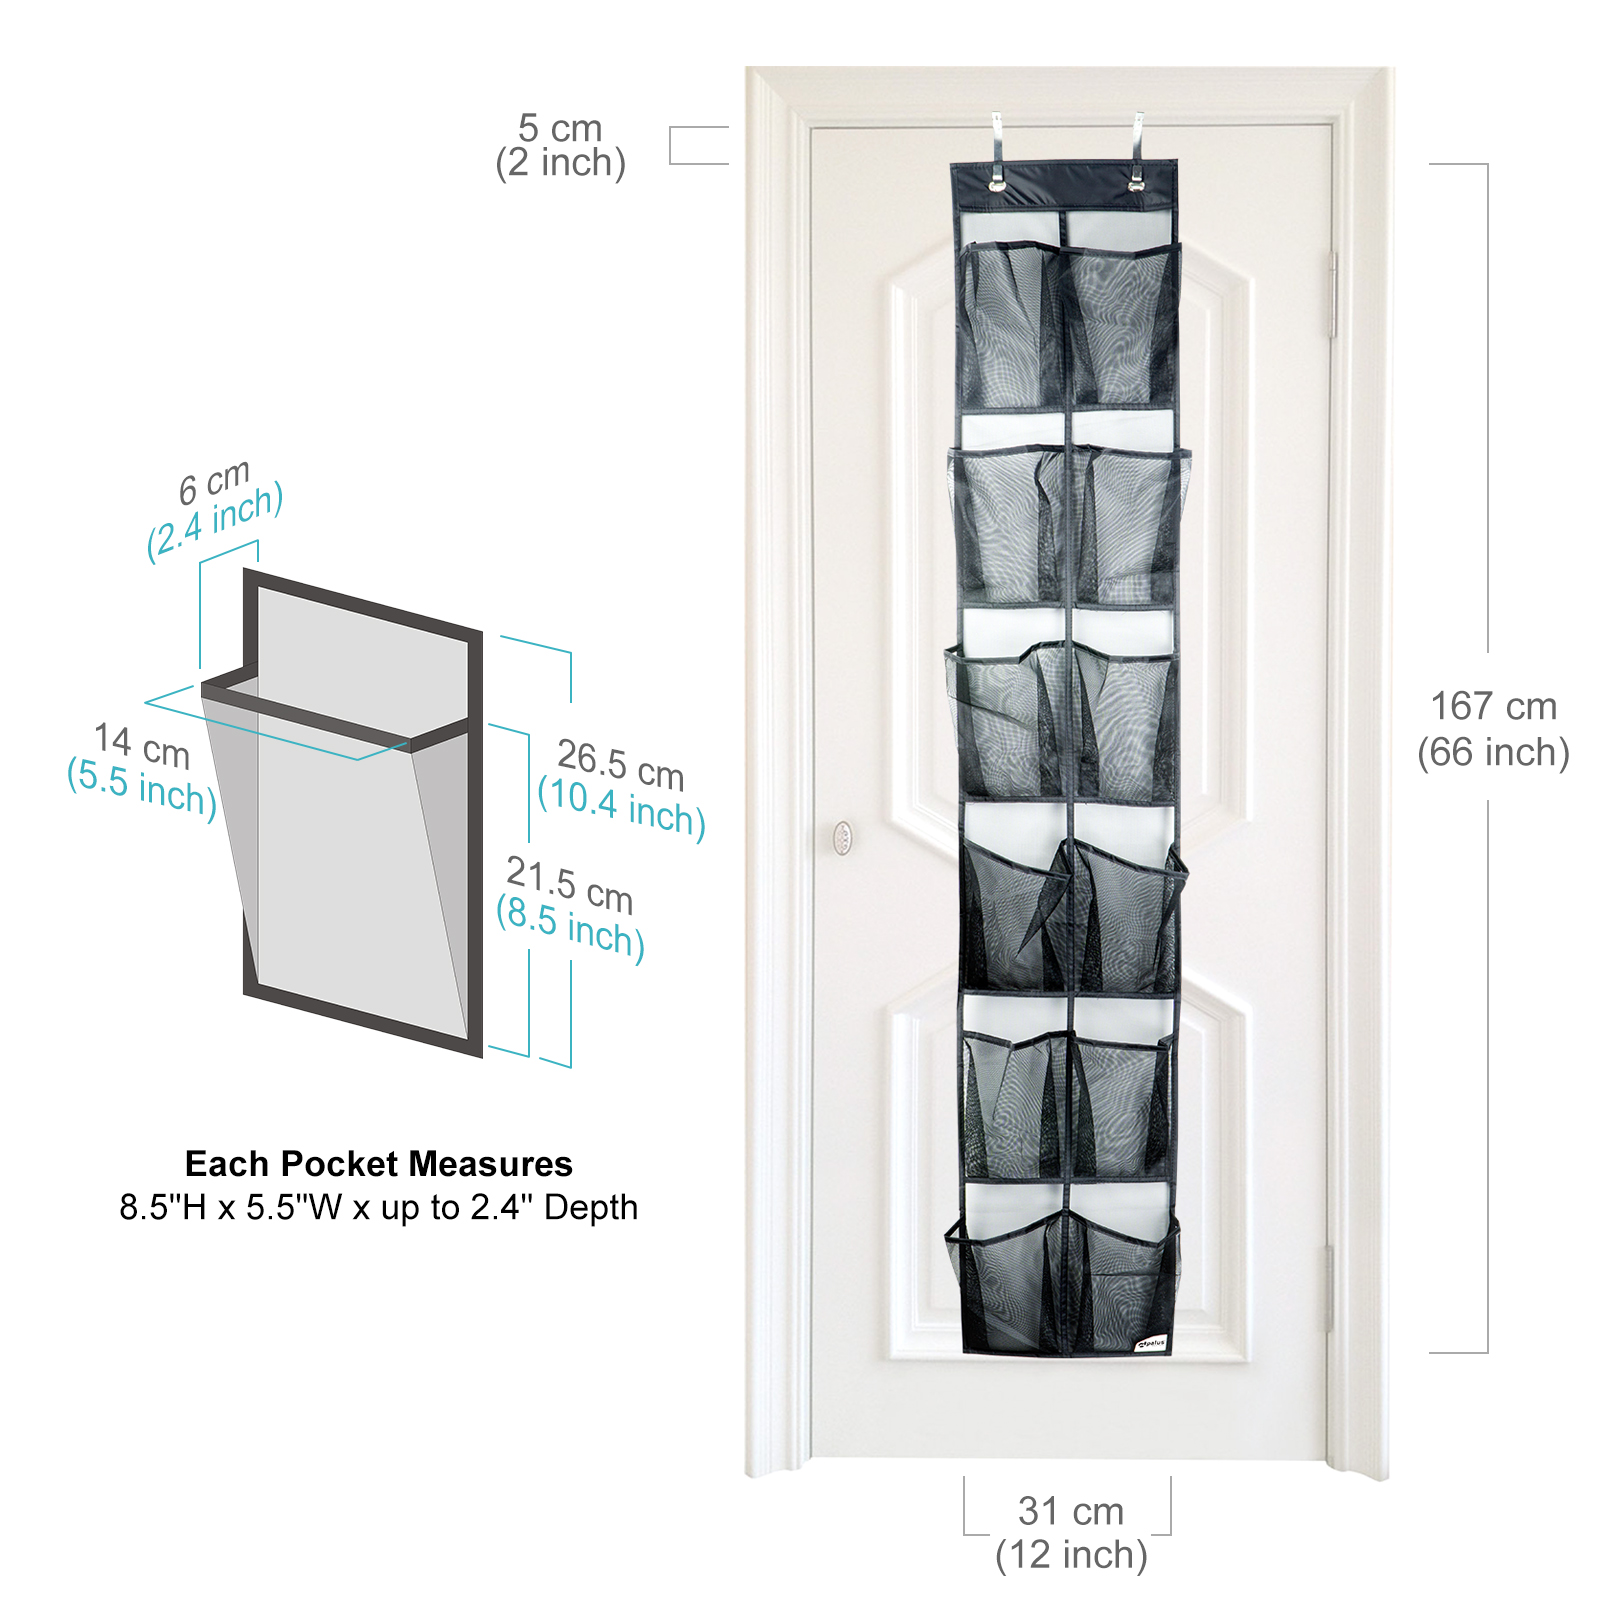 Apalus Over The Door Shoe Organizer, Door-Mounted Storage, Sneakers, Sandals Rack with Mesh Pockets for Easy Storage with 2 Adjustable Door Hooks, Fits Most Door Types/Sizes (12 Pockets)